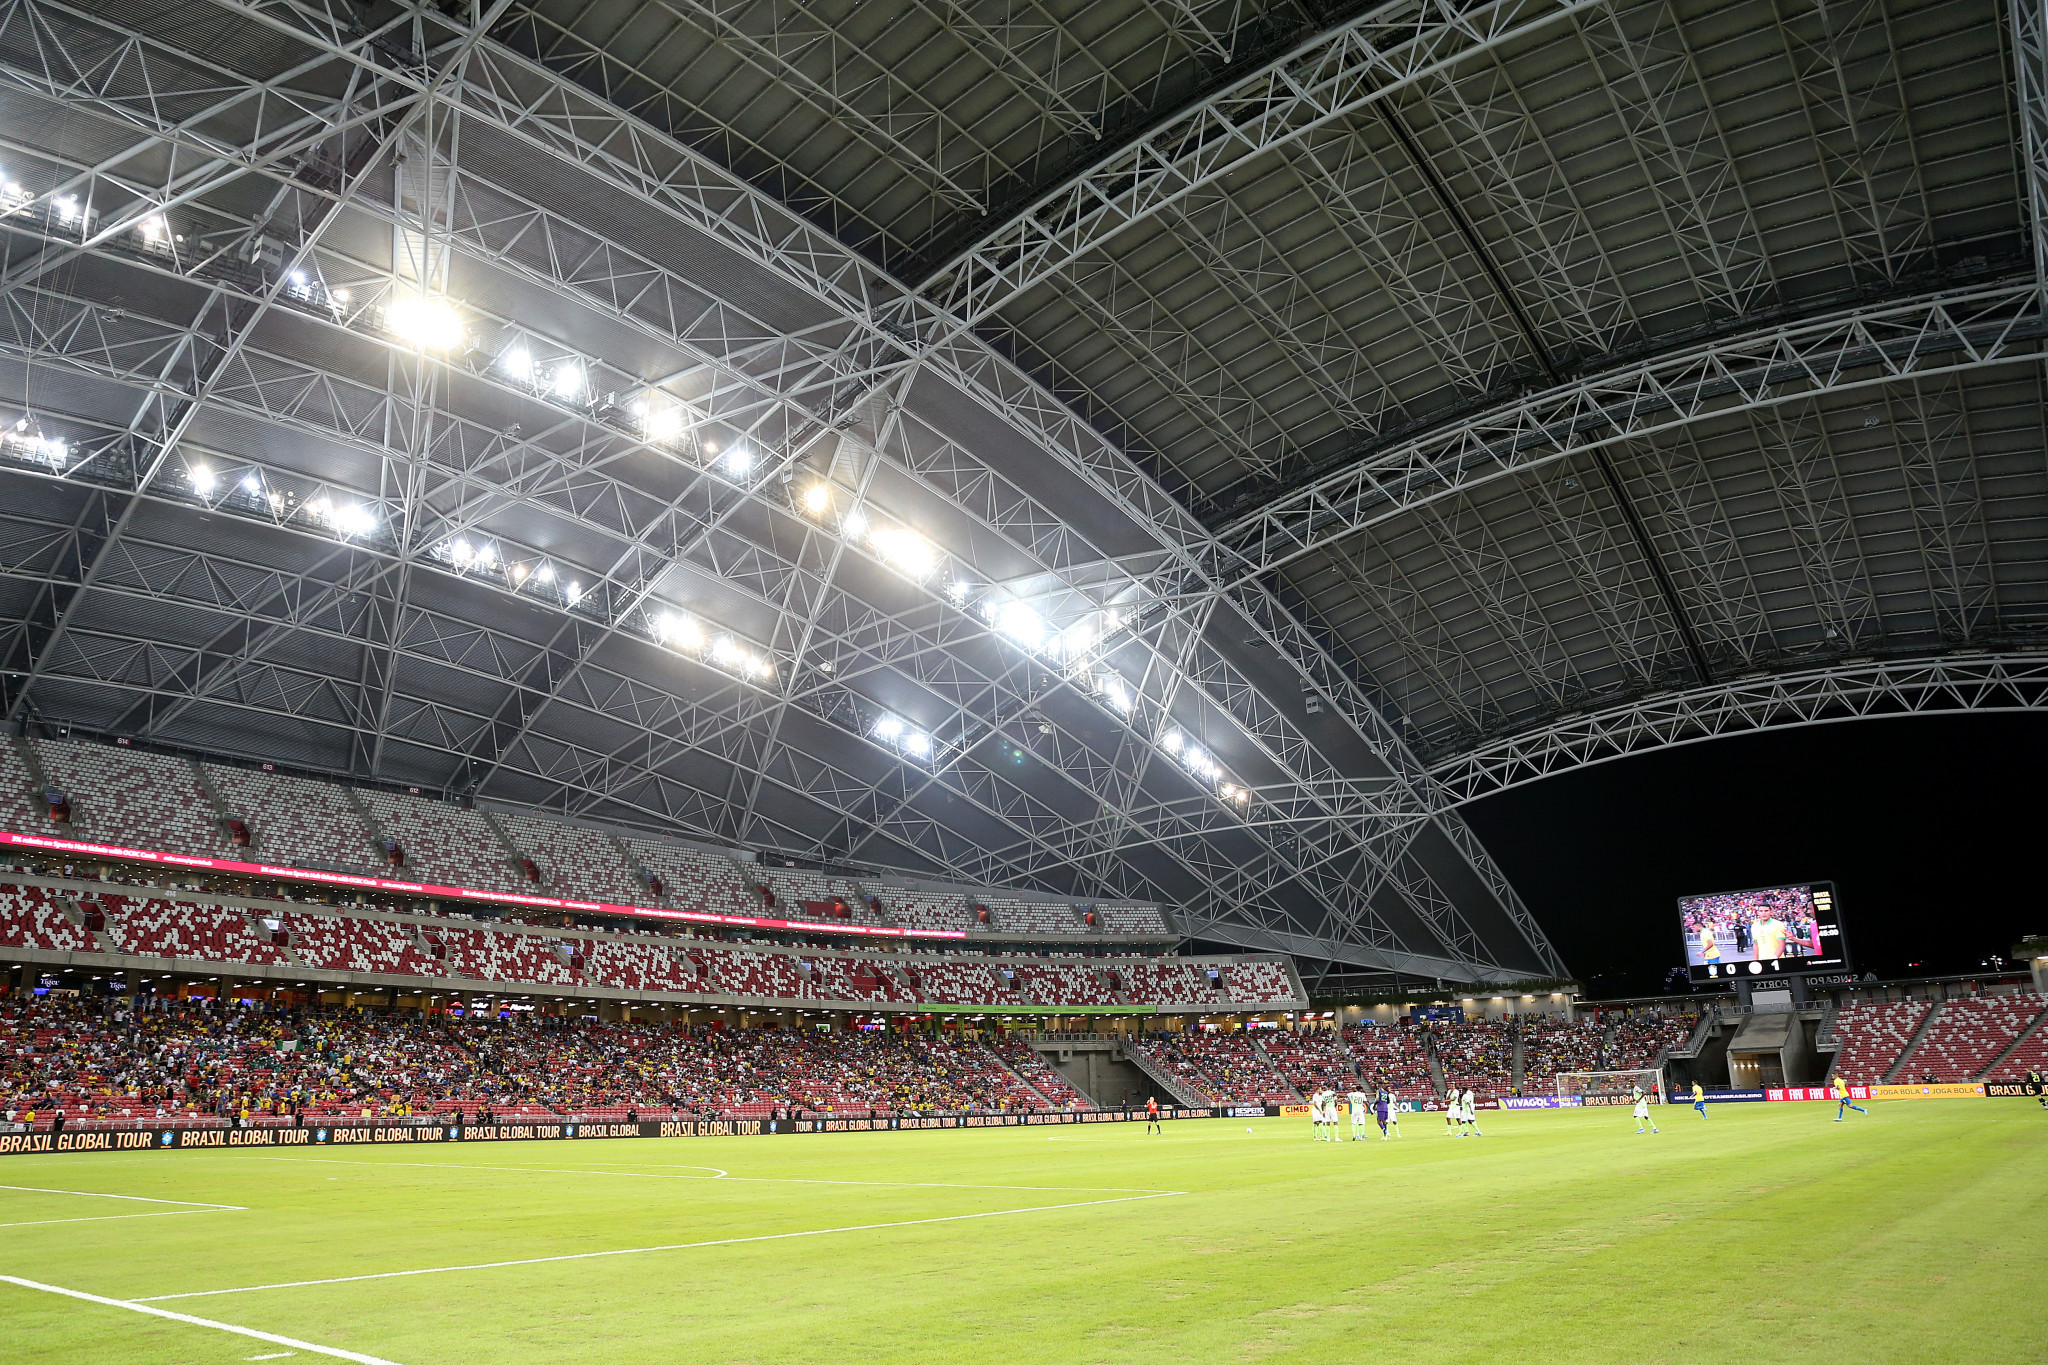 Singapore has been confirmed as hosts for the delayed 2020 AFF Championship ©Getty Images